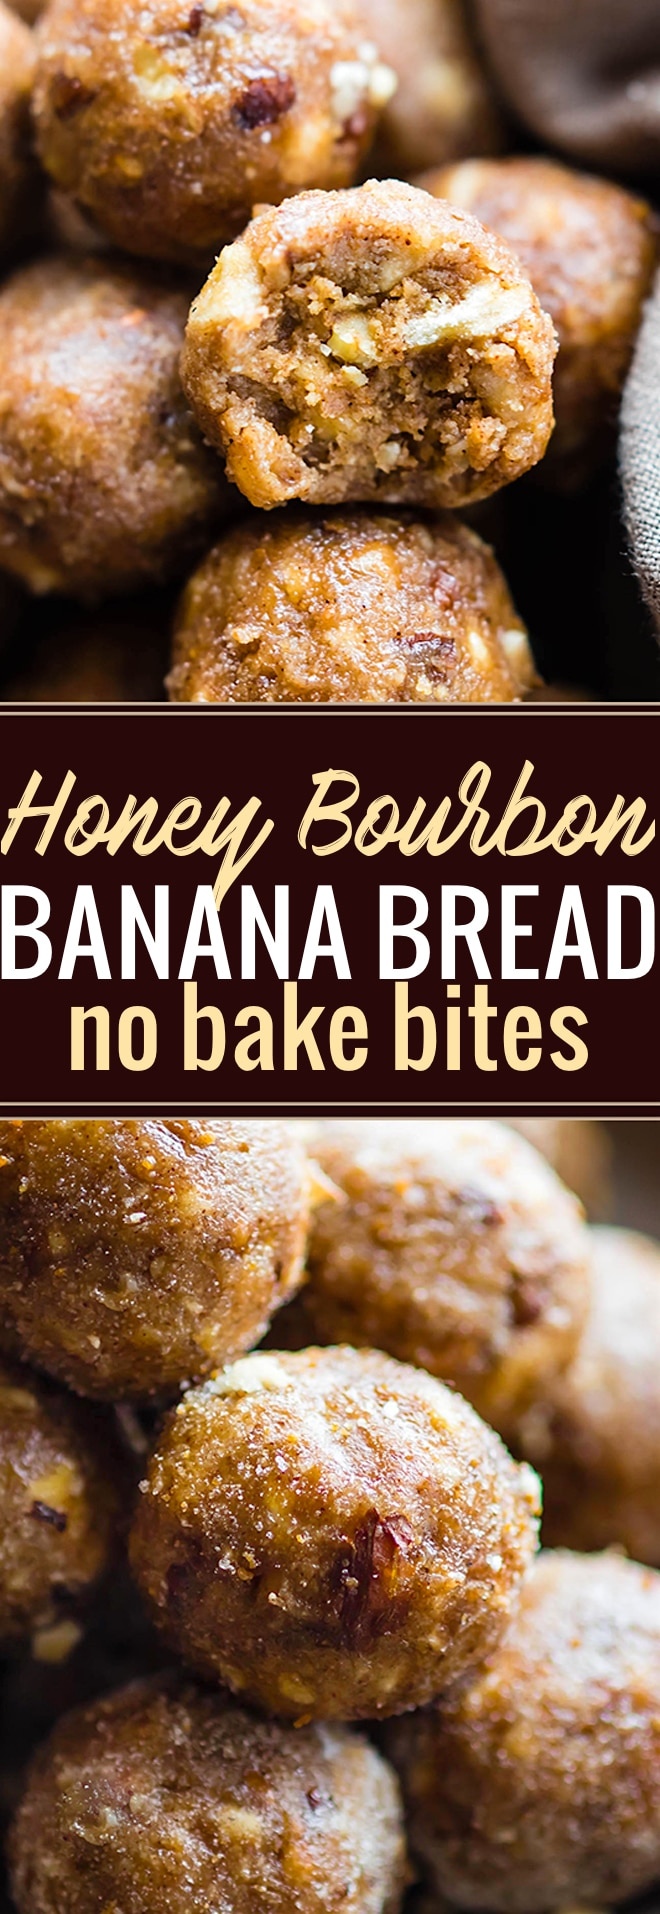 "These Honey Bourbon Banana Bread bites make a delicious quick no bake dessert! A gluten free Bourbon Banana bread bites recipe with a little ""spike"" and seasonal spices. Whip them up for a holiday dessert or tasty snack ready in no time. Dairy free and non alcoholic Vegan option. @cottercrunch"